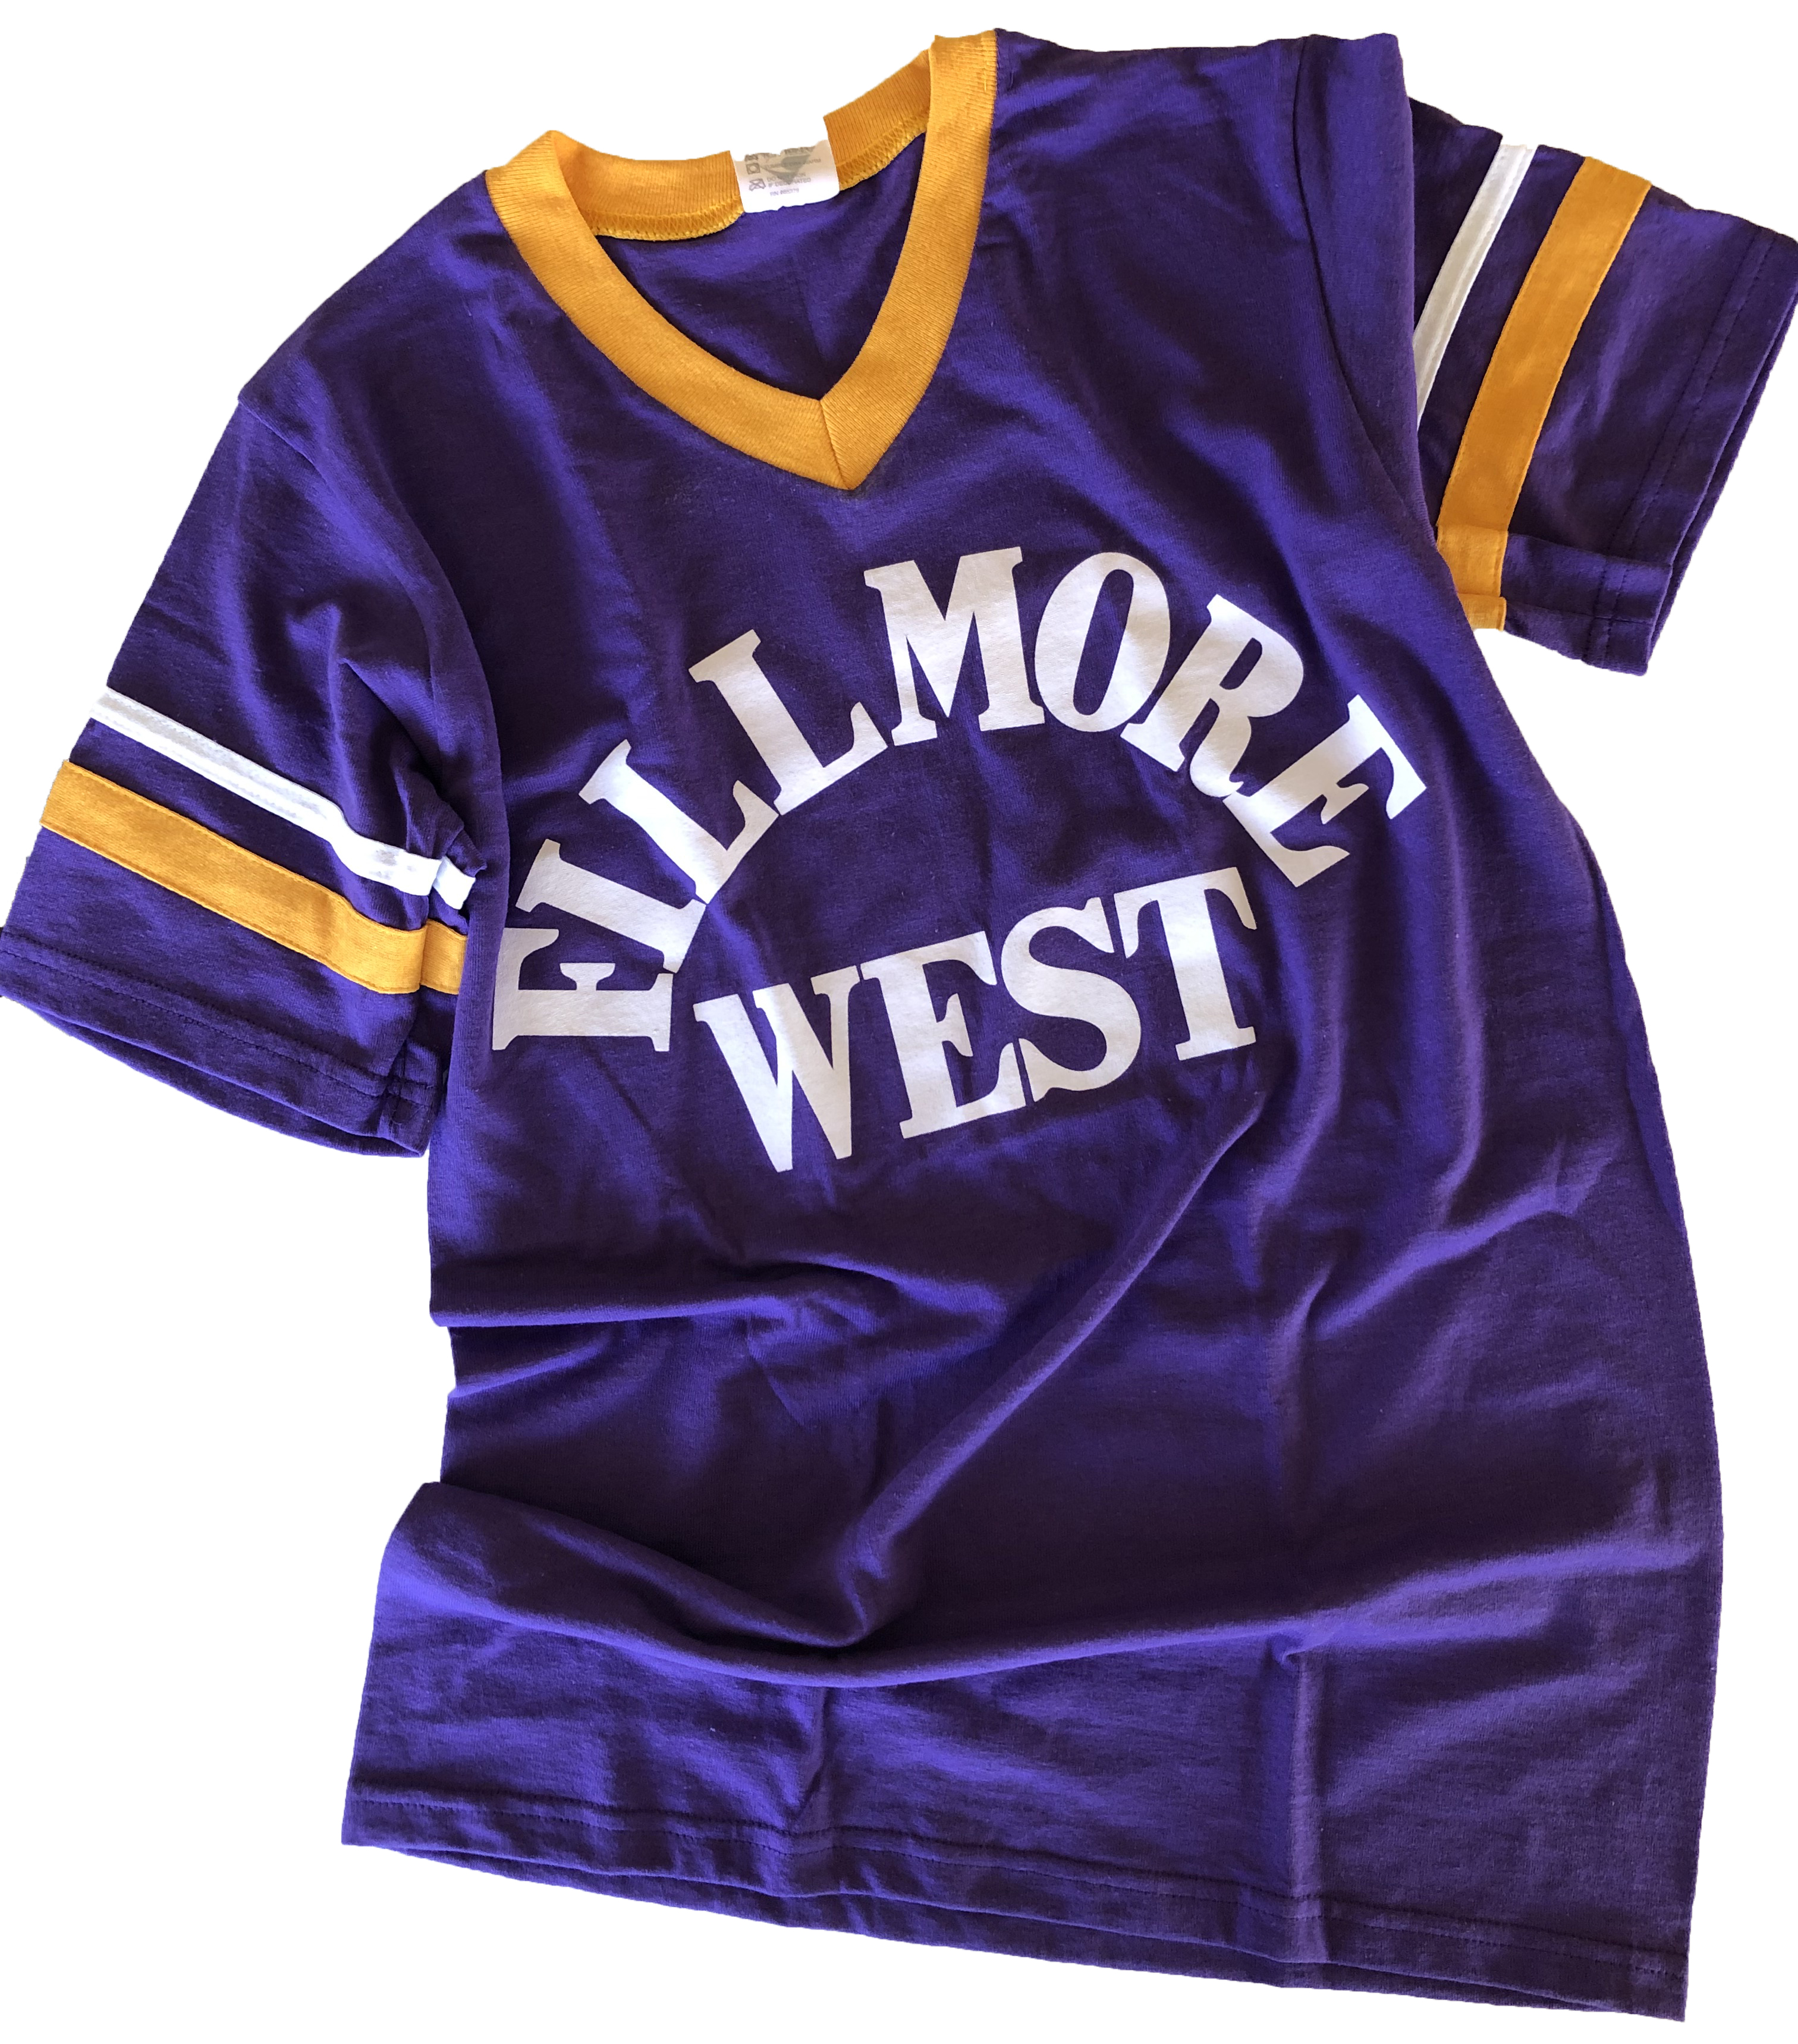 Fillmore West Jersey Men's Retro T-Shirt